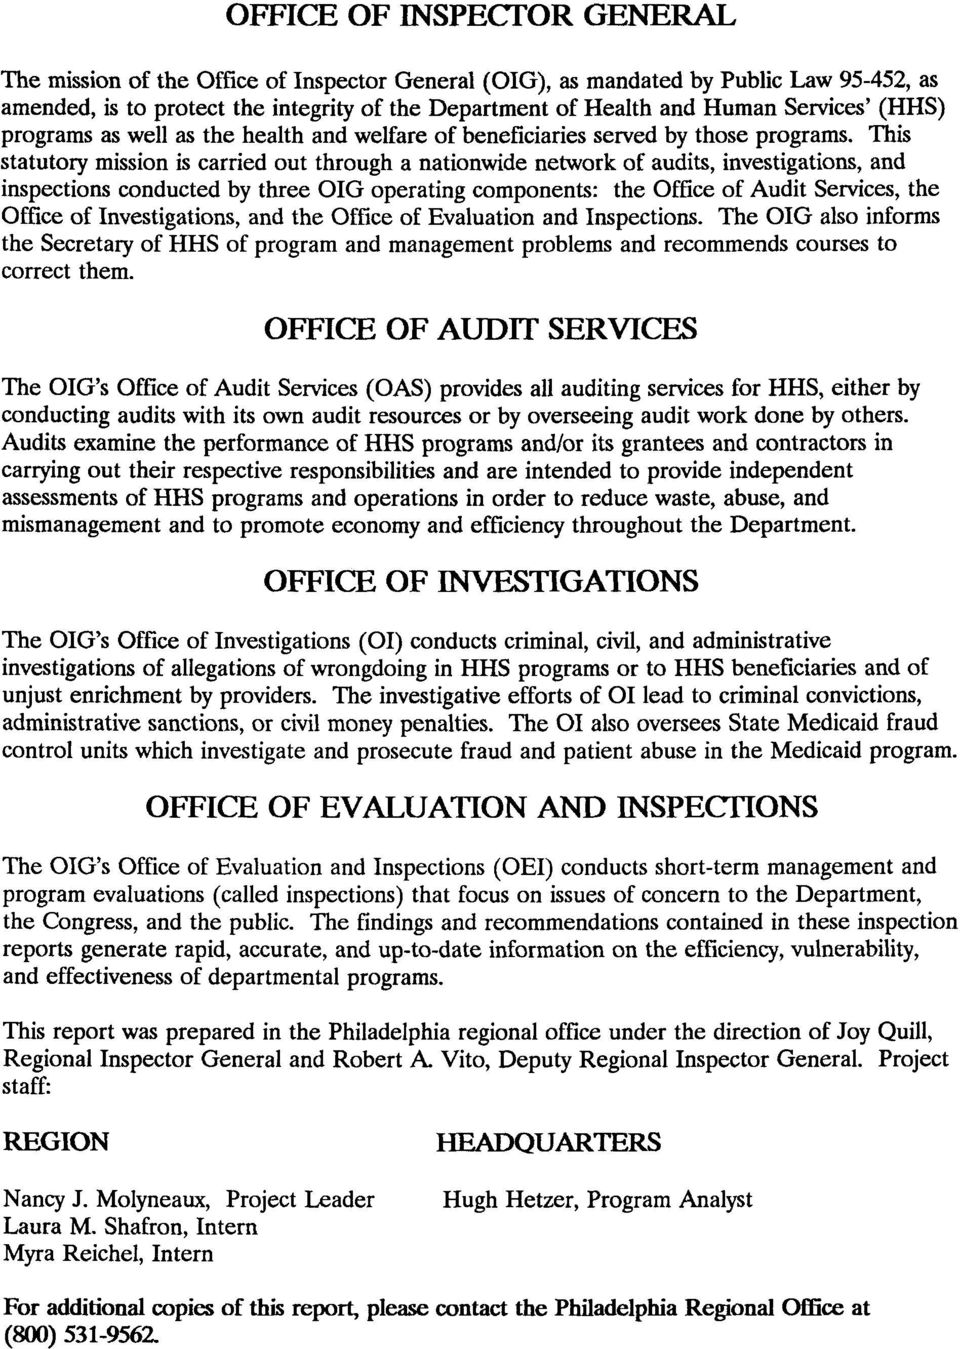 This statutory mission is carried out through a nationwide network of audits, investigations, and inspections conducted by three OIG operating components: the Office of Audit Services, the Office of